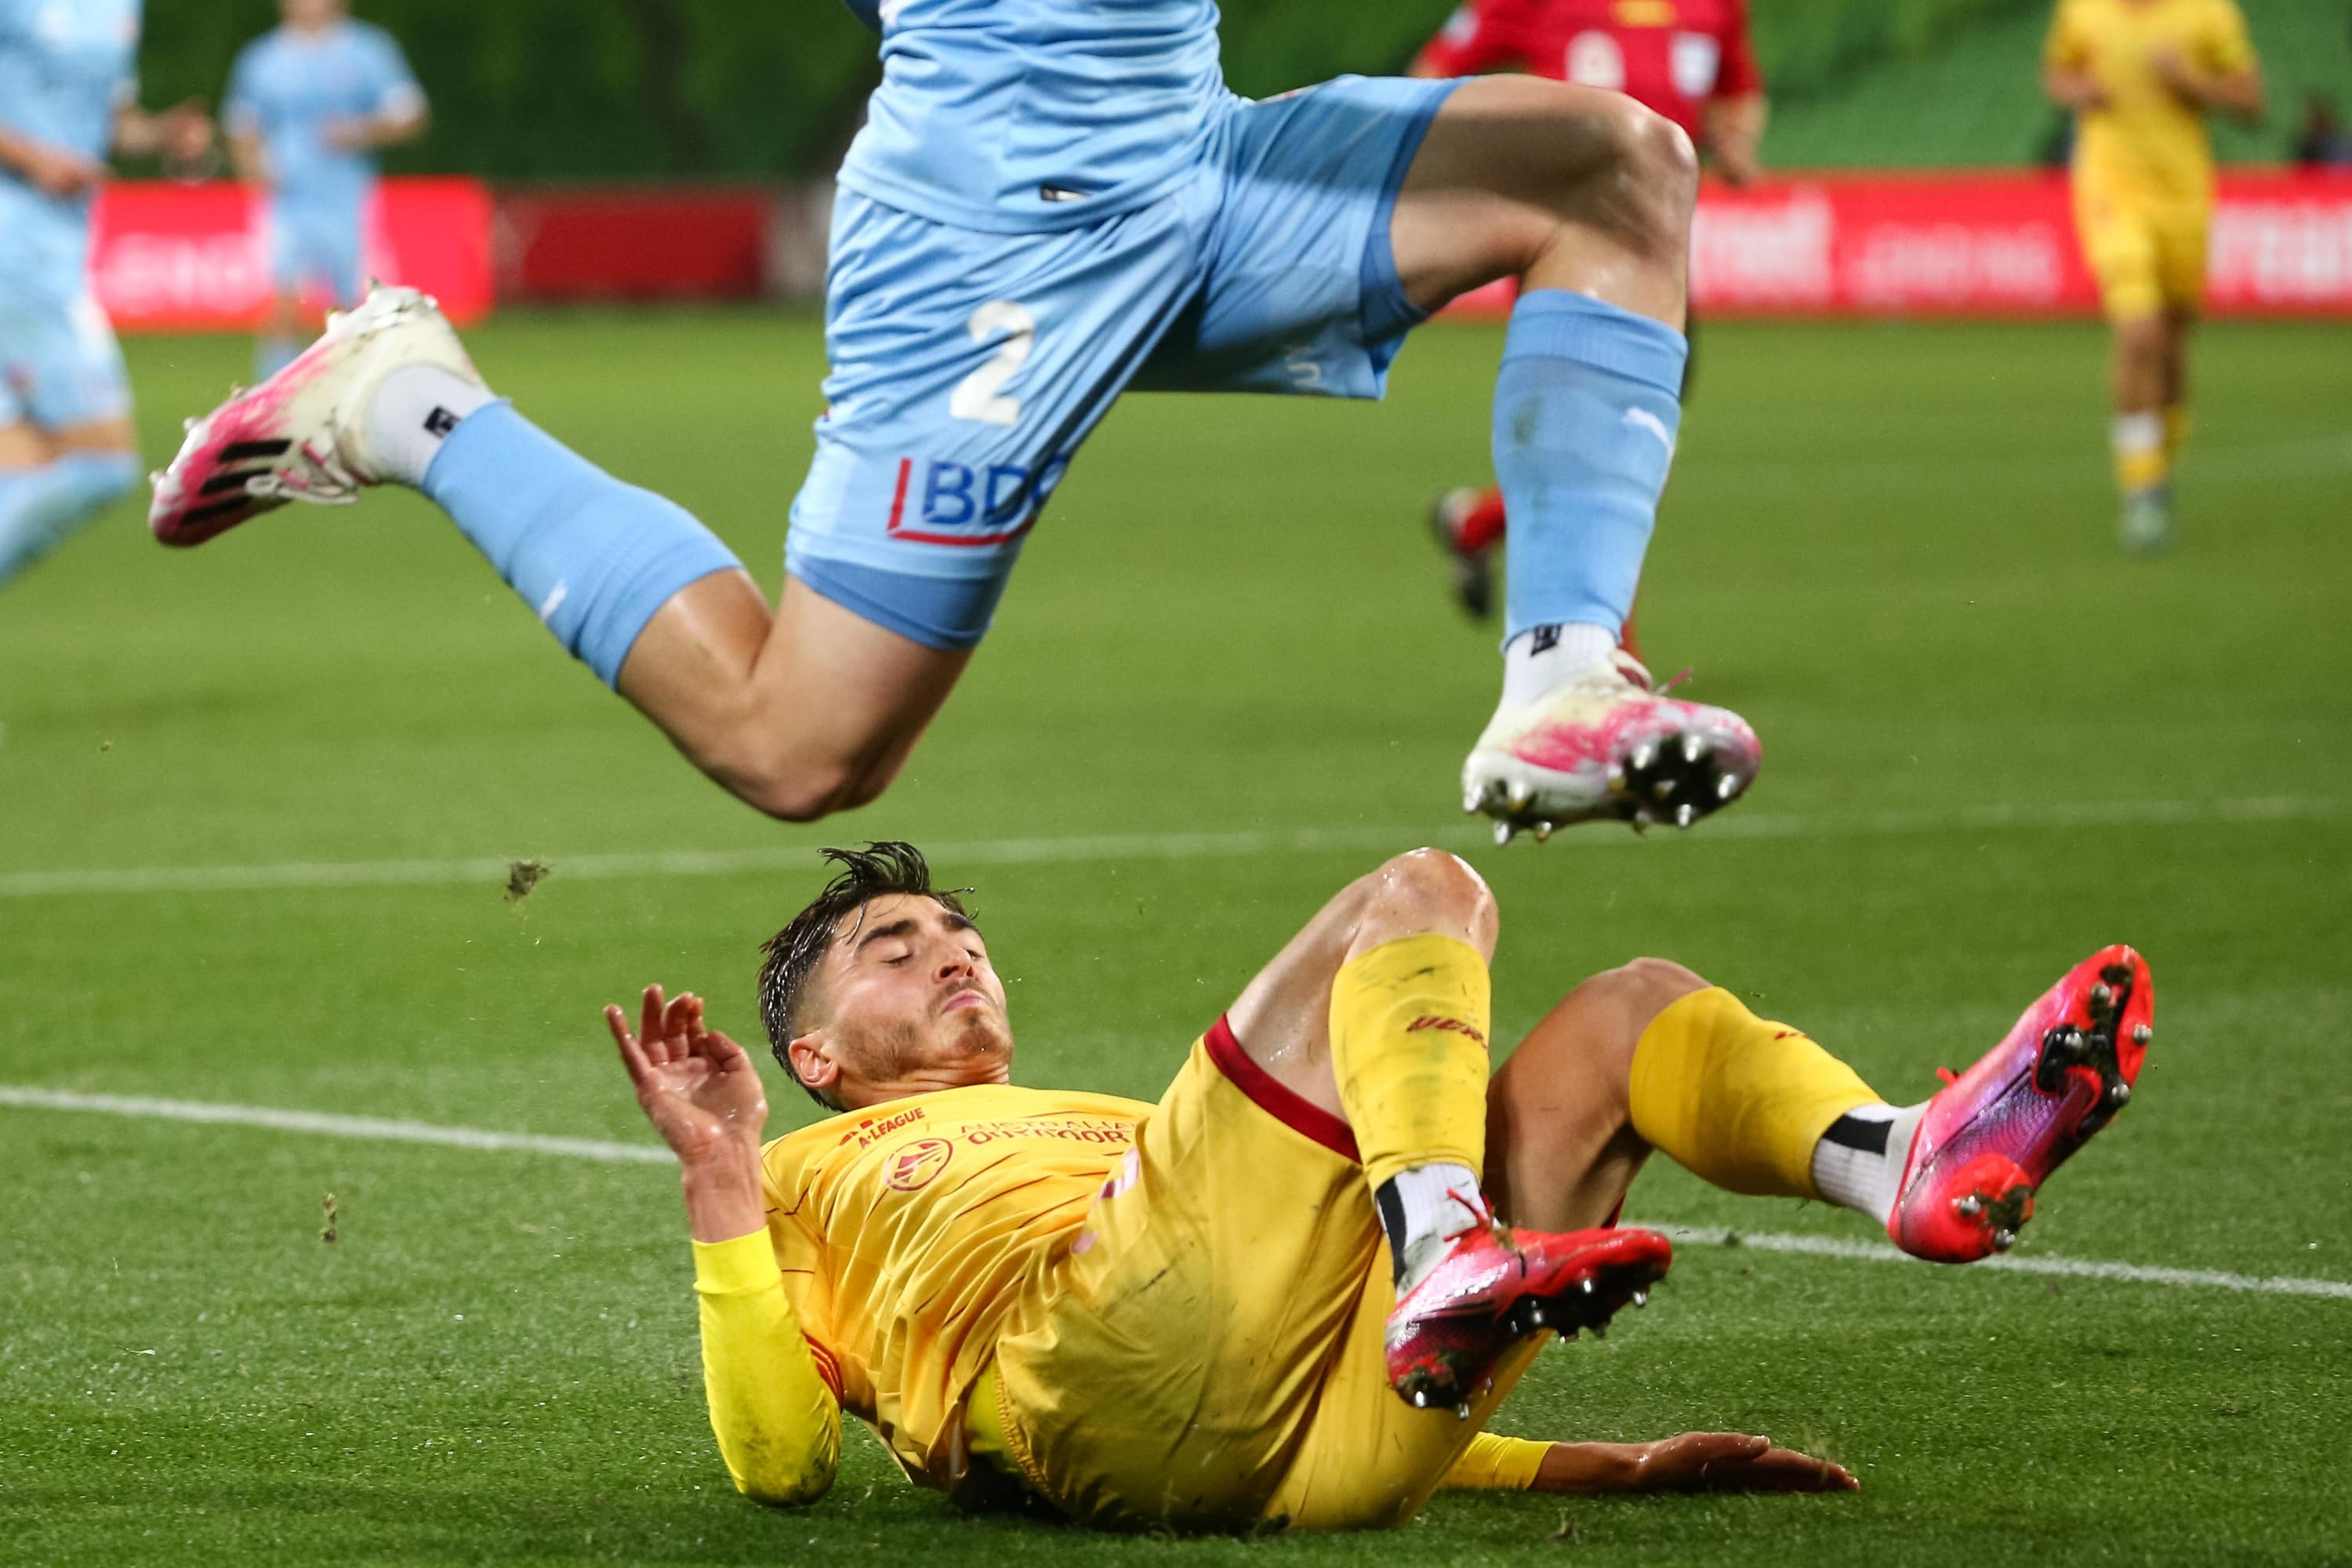 MELBOURNE, AUSTRALIA - MAY 13: Joshua Cavallo of Adelaide United takes a fall as Scott Galloway of Melbourne City controls the ball during the Hyundai A-League soccer match between Melbourne City FC and Adelaide United on May 13, 2021 at AAMI Park in Melbourne, Australia. (Photo by Speed Media/Icon Sportswire)